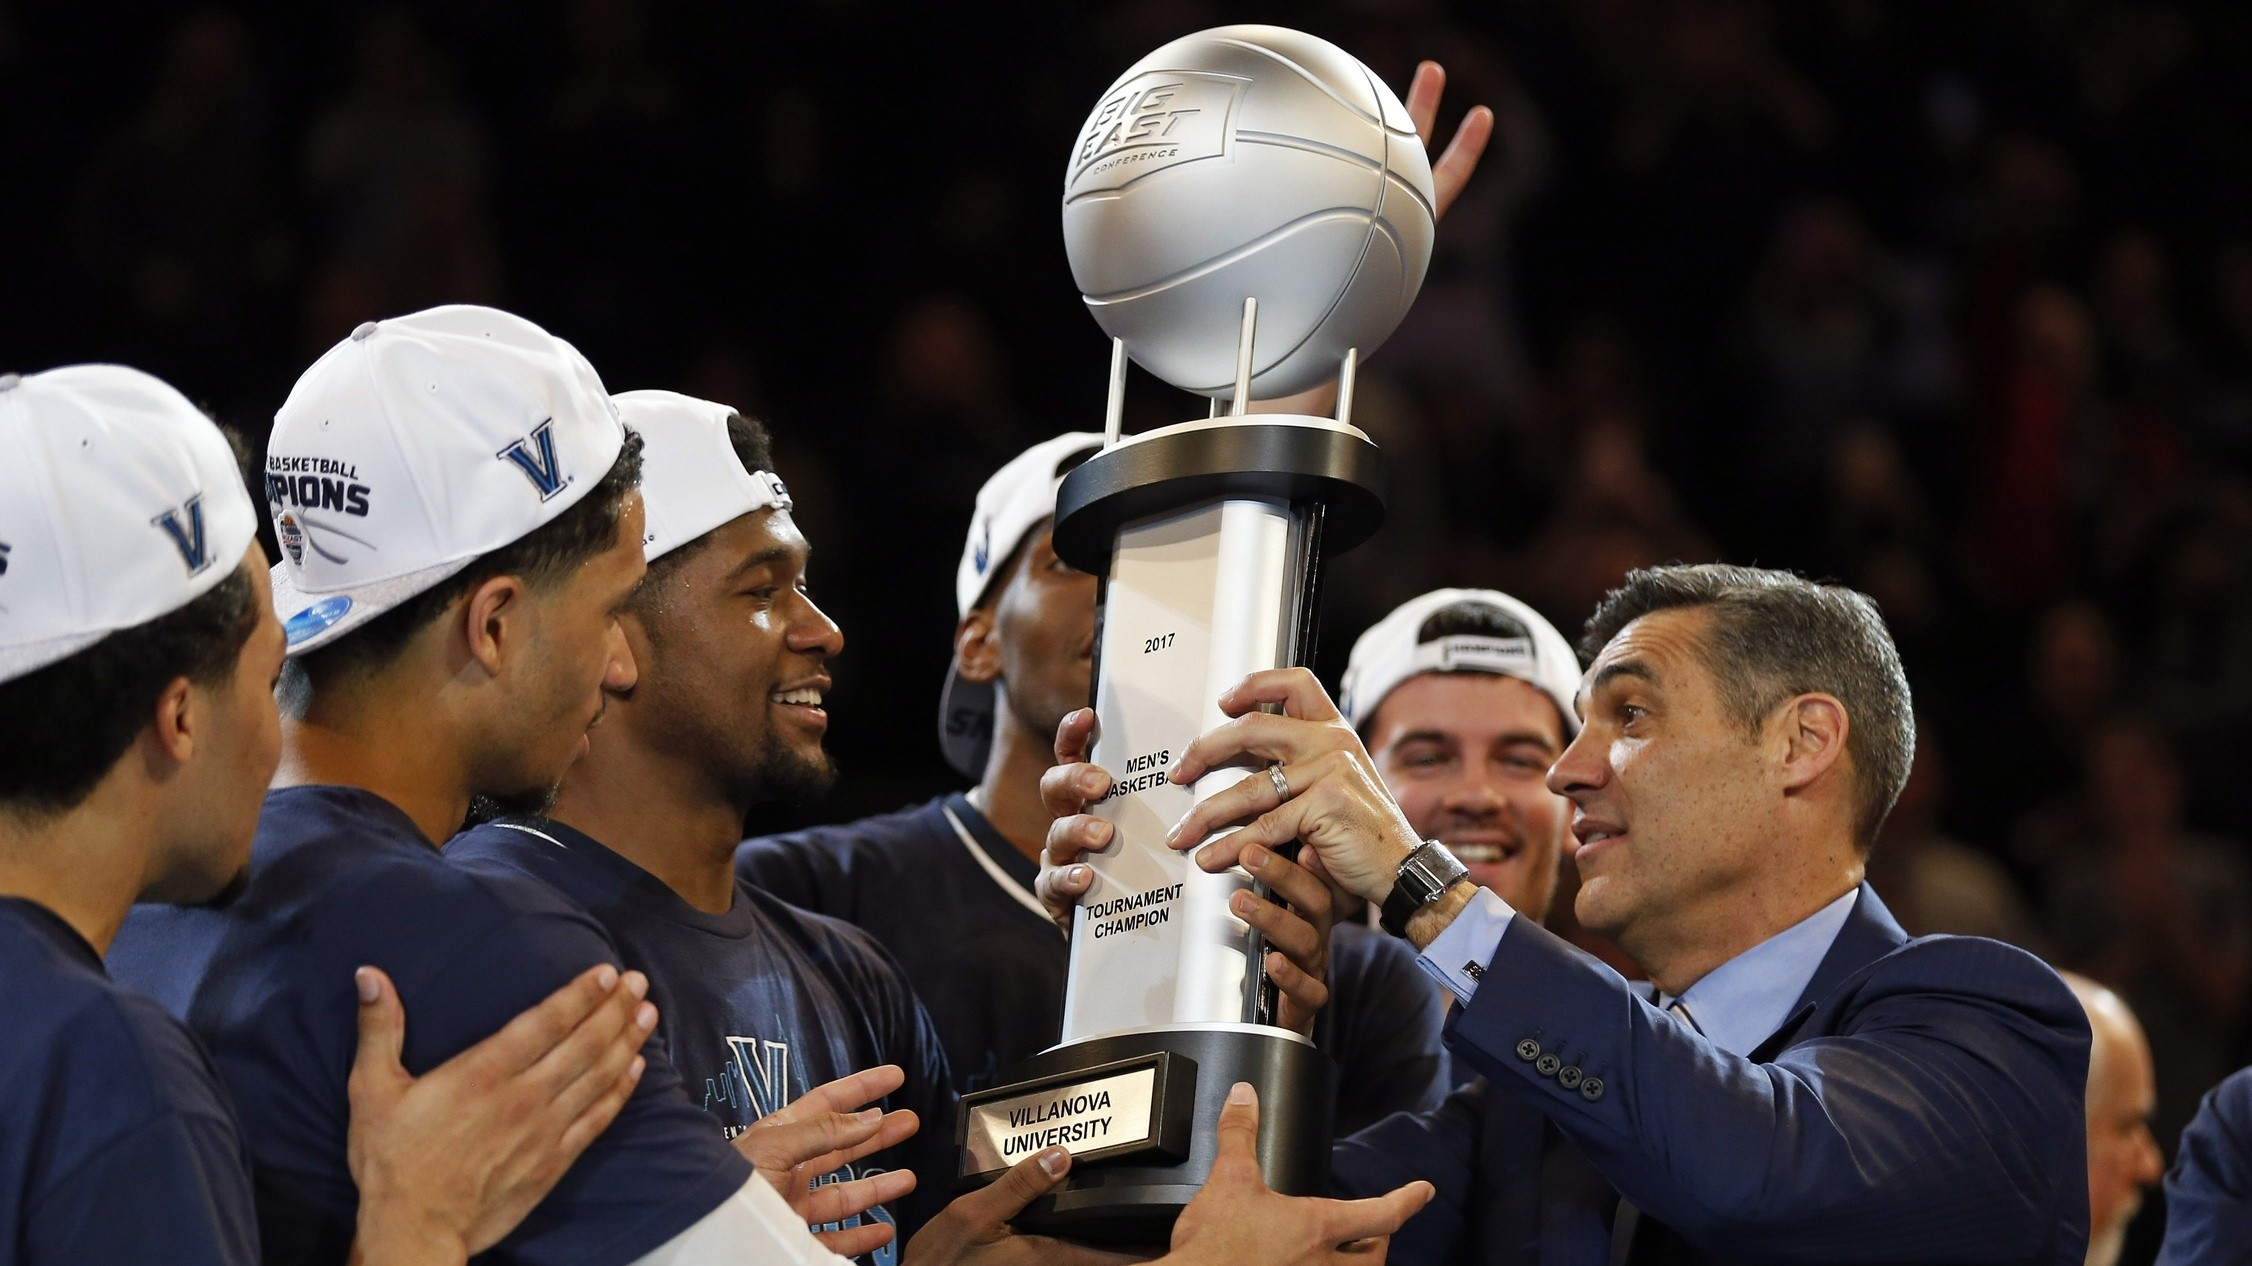 Four Years After Realignment, the New Big East Is as Strong as Ever